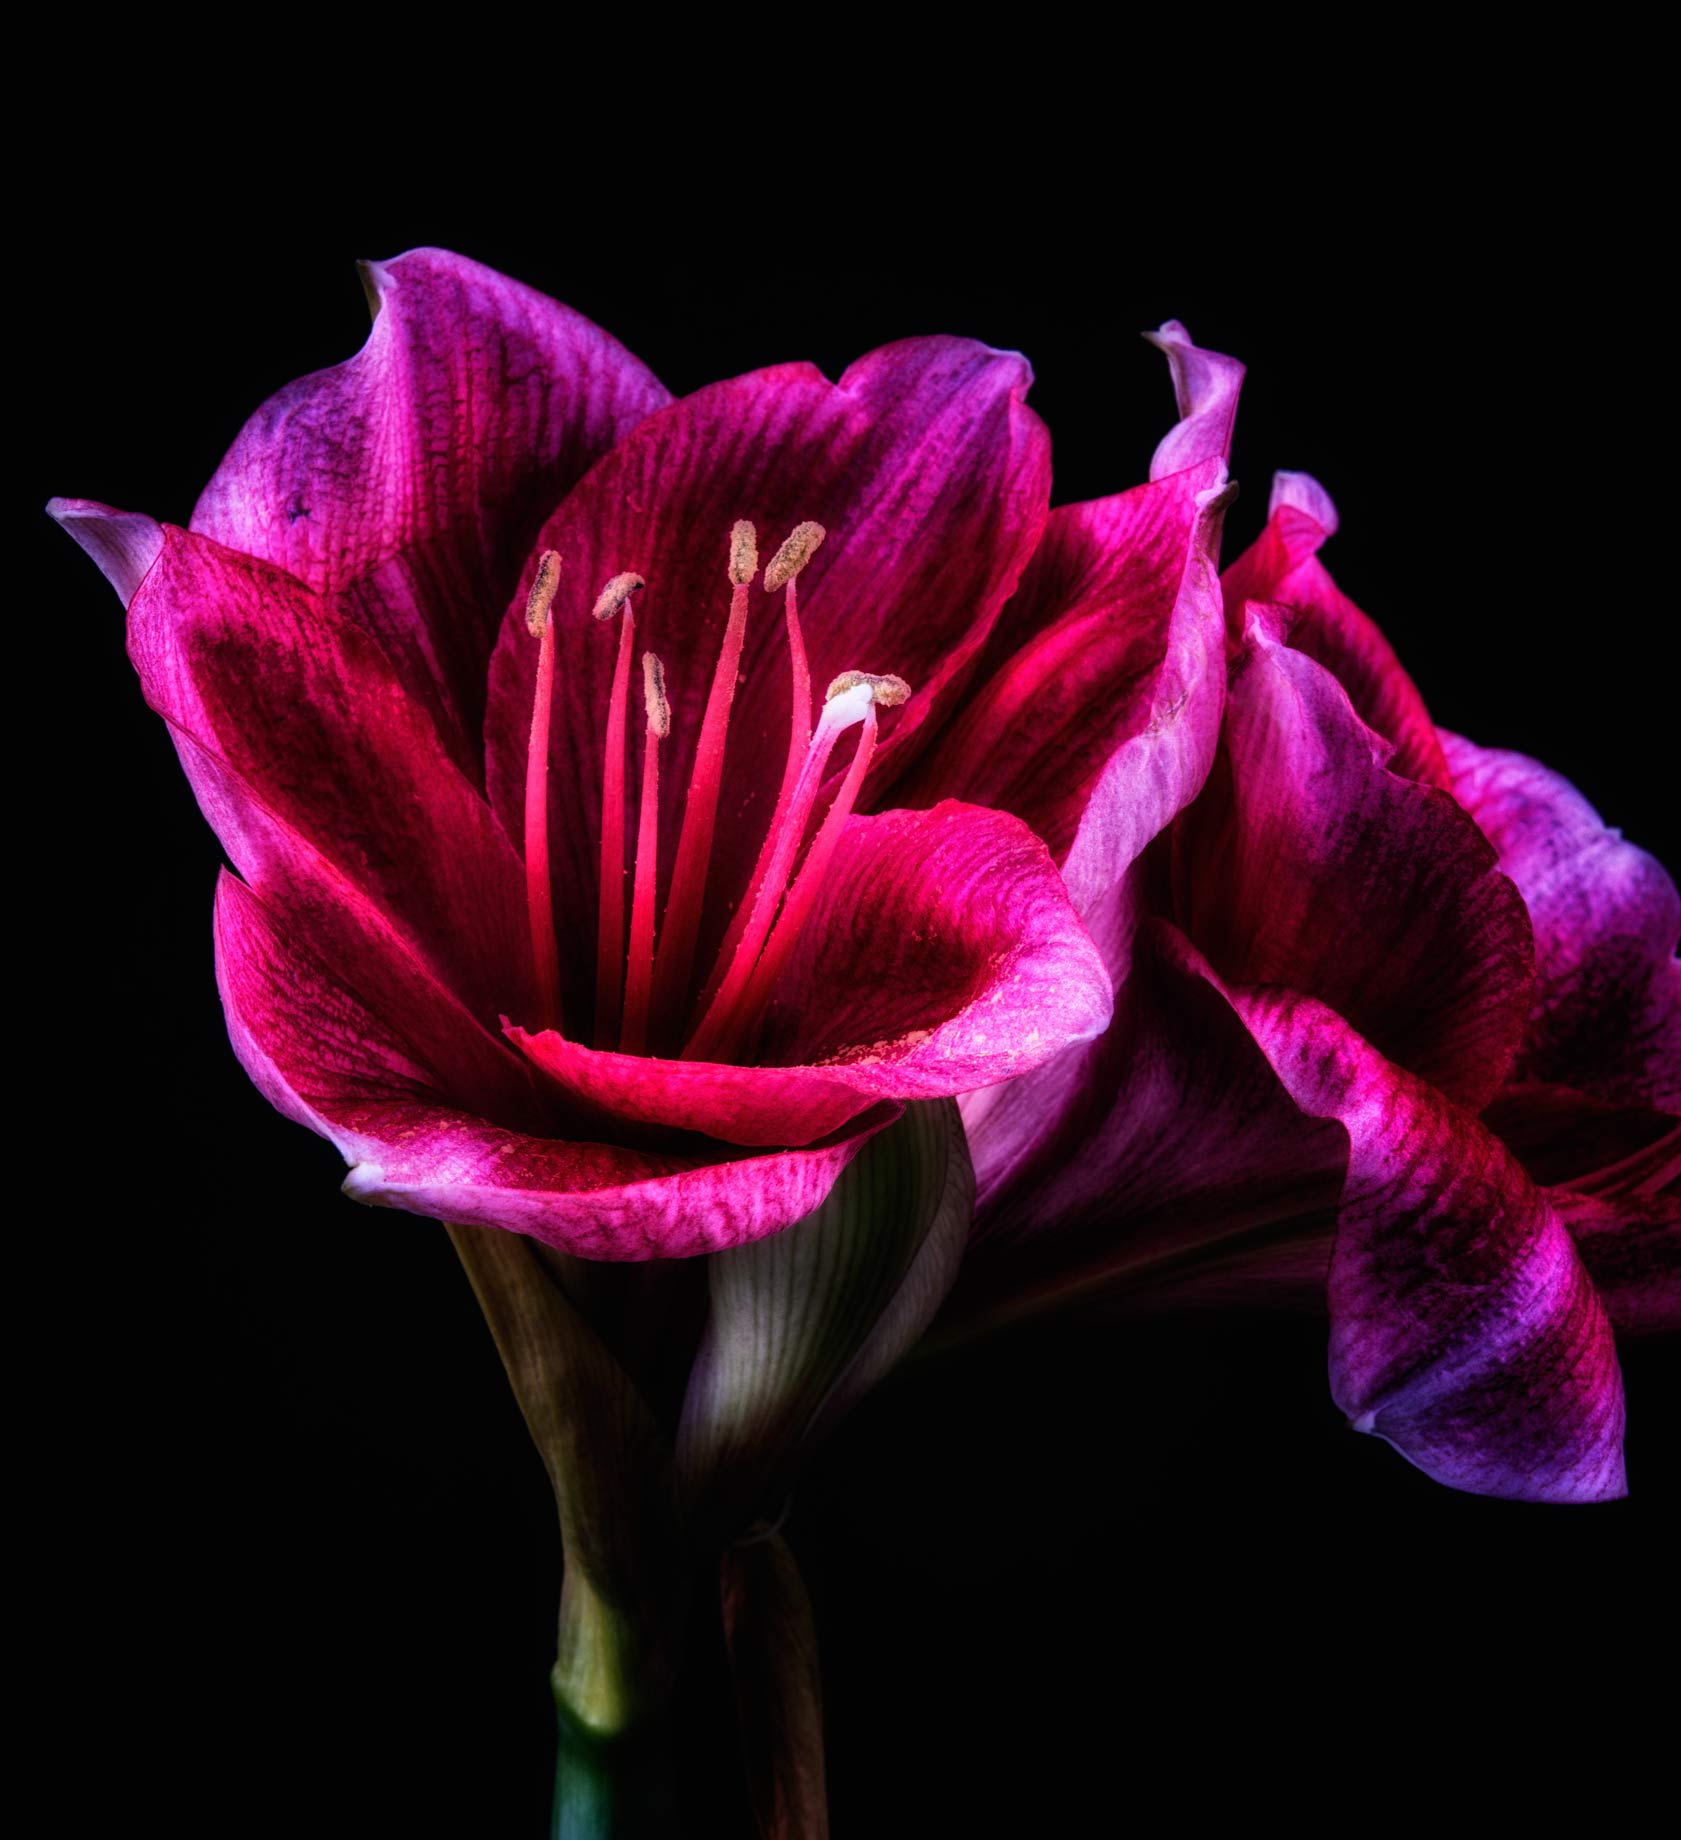 Photograph Fine Art Print of a glowing flower